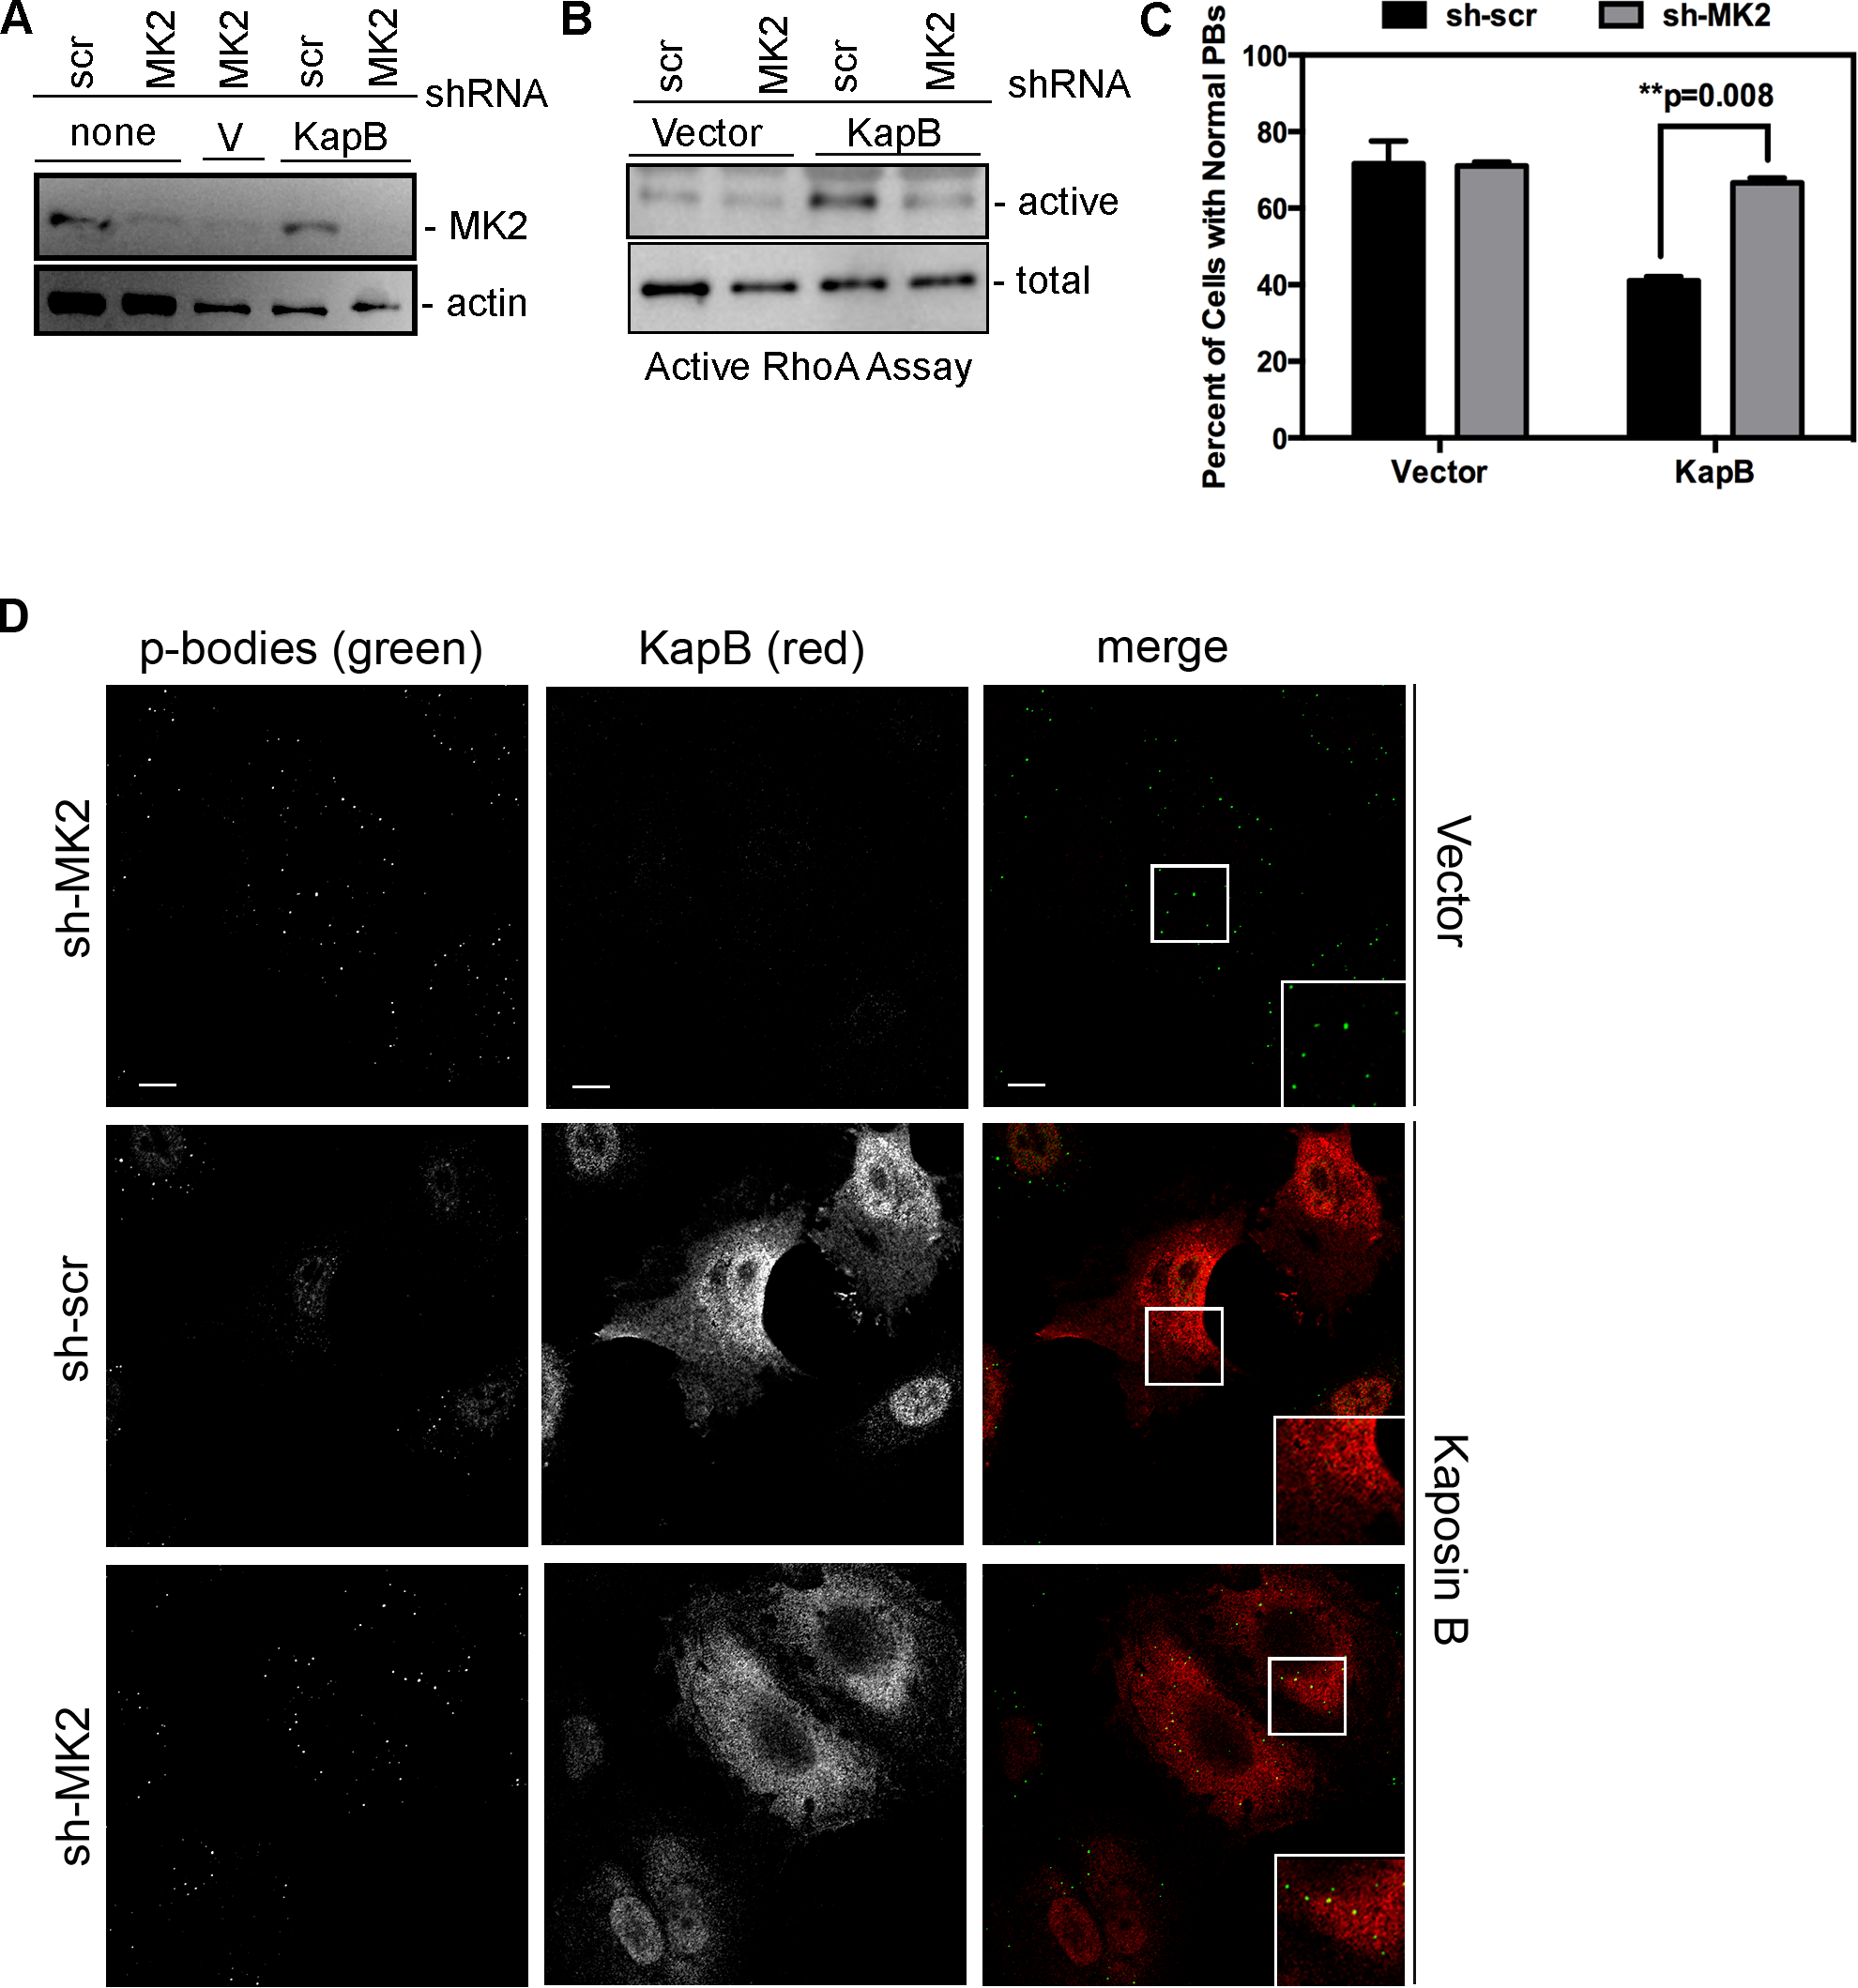 KapB-mediated activation of RhoA-GTPase and PB dispersal requires MK2.